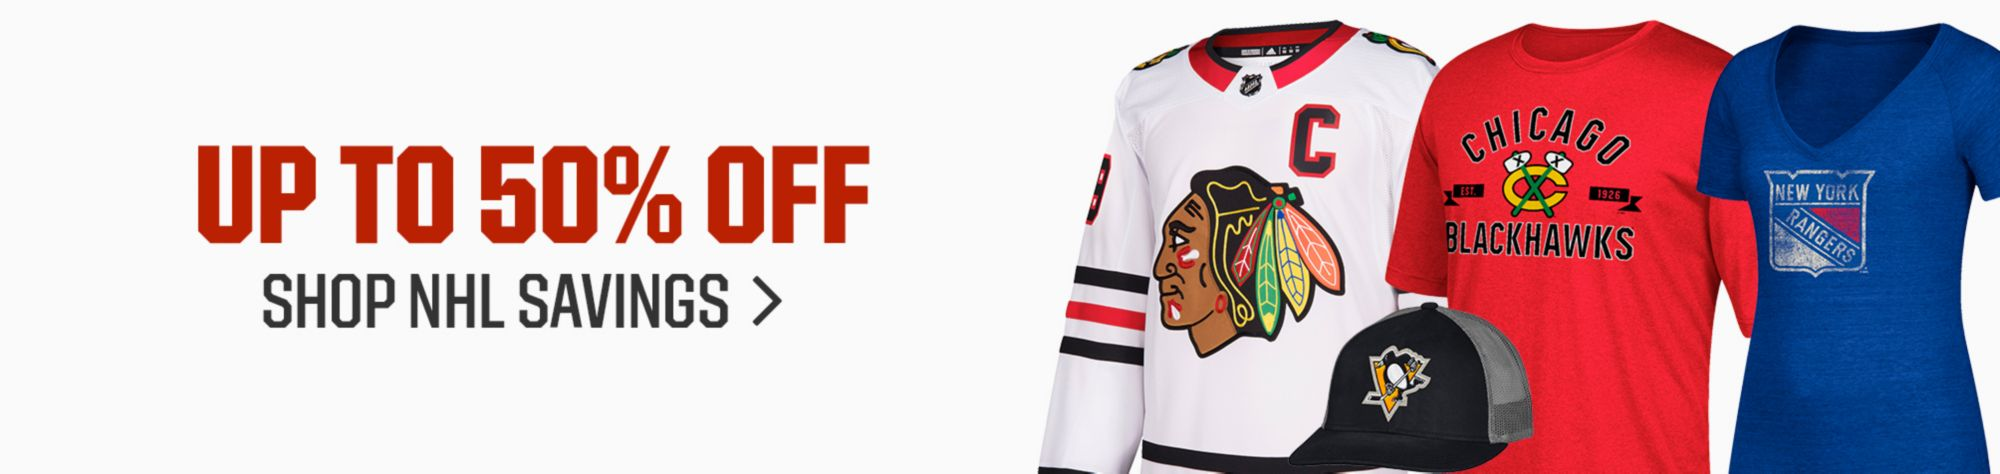 Up To 50% Off - Shop NHL Savings